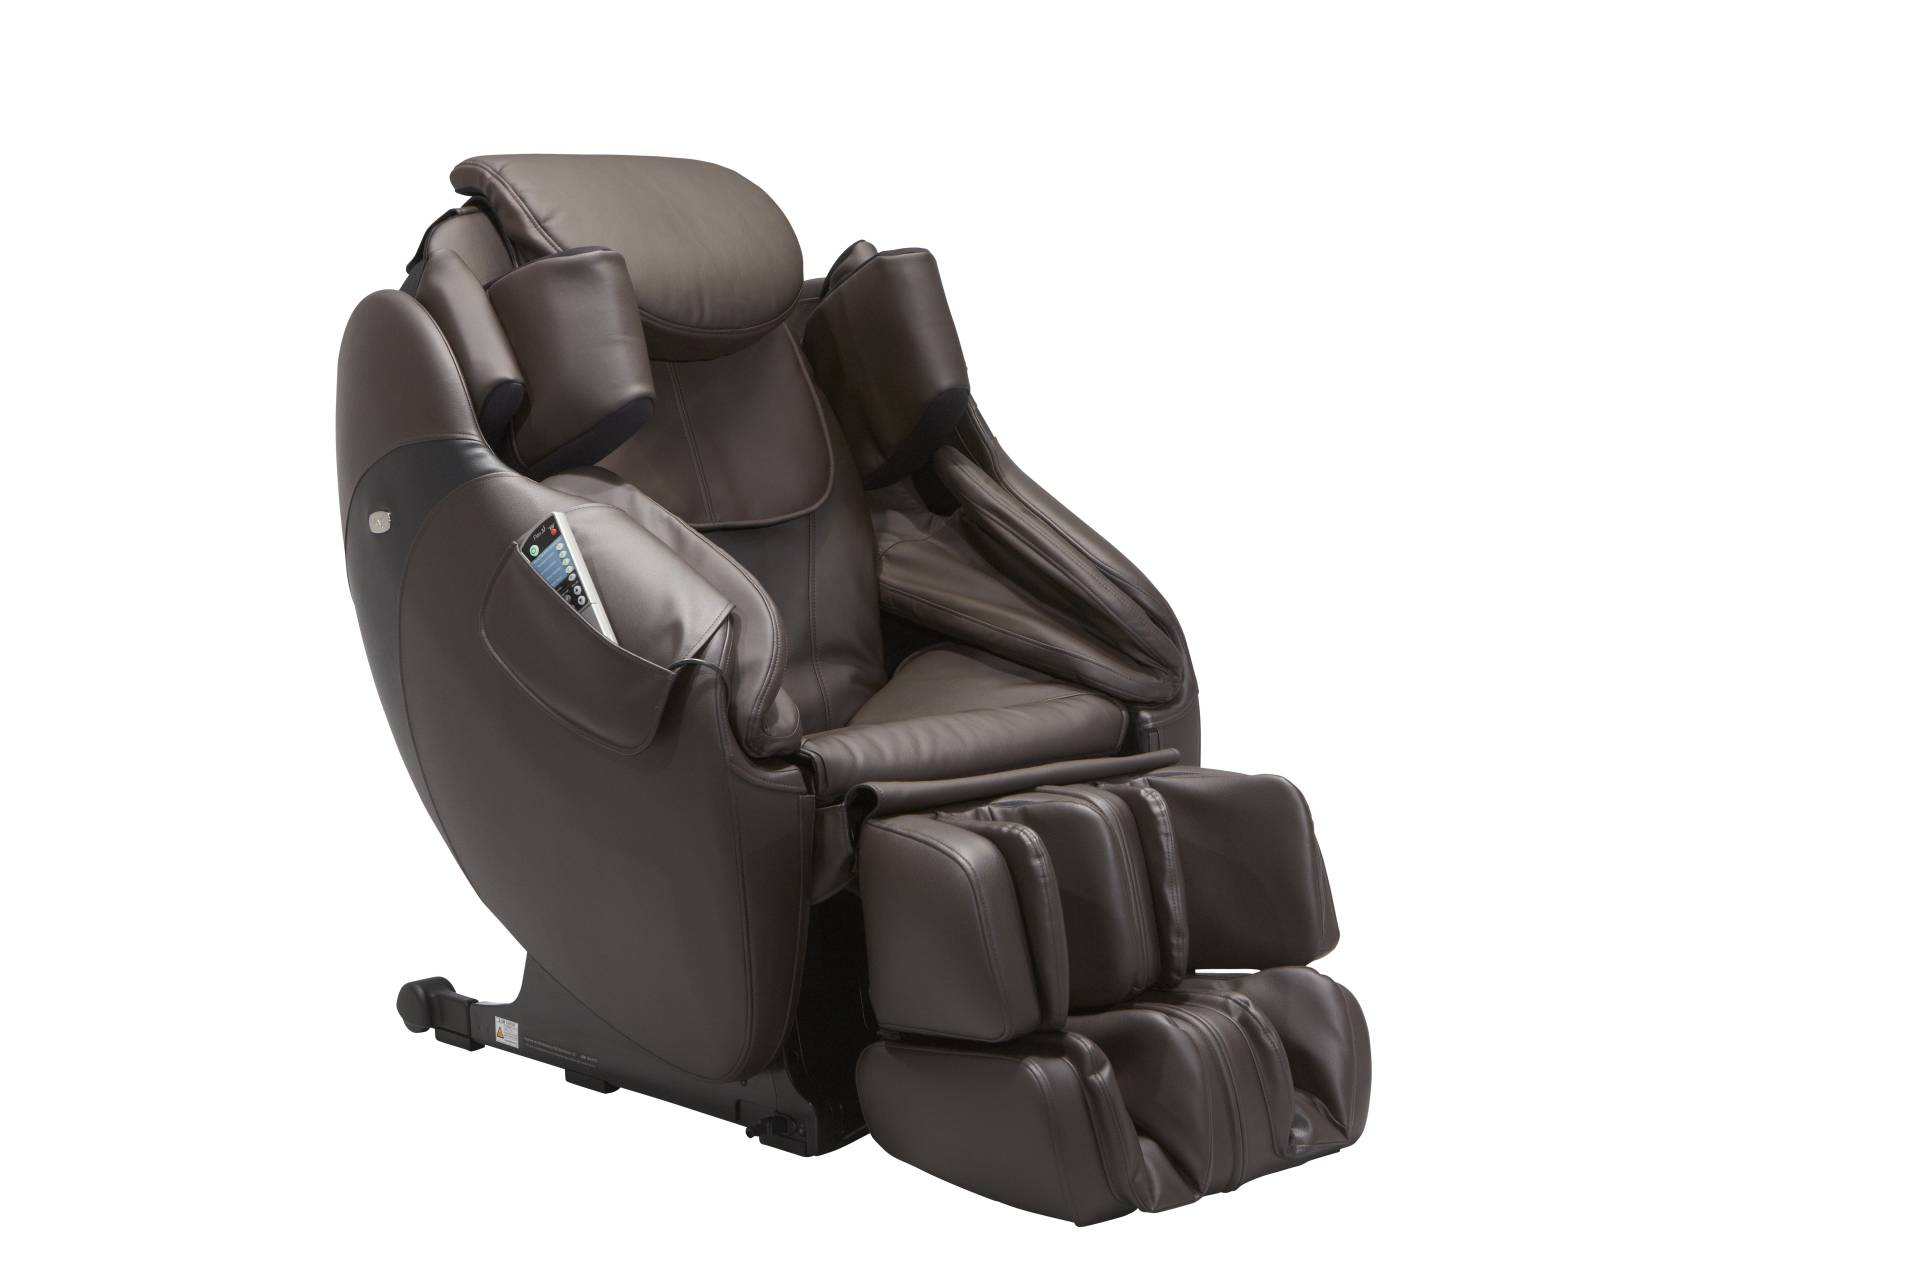 Inada Chair Inada 3s Medical Massage Chair Australia Inada Massage